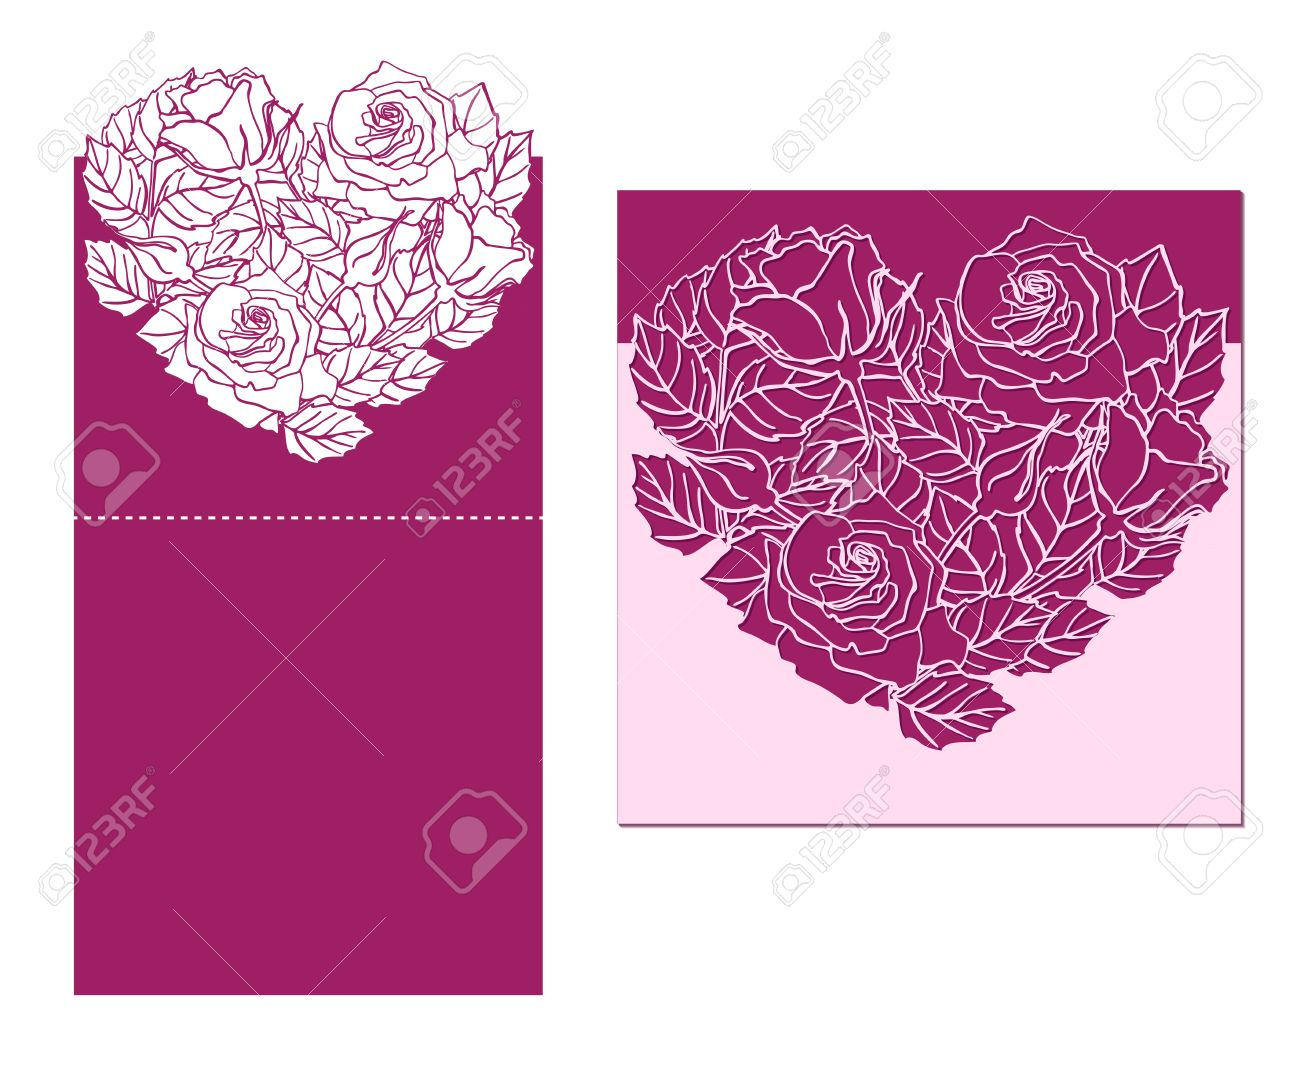 10 457 Laser Cutting Cliparts Stock Vector And Royalty Free Laser